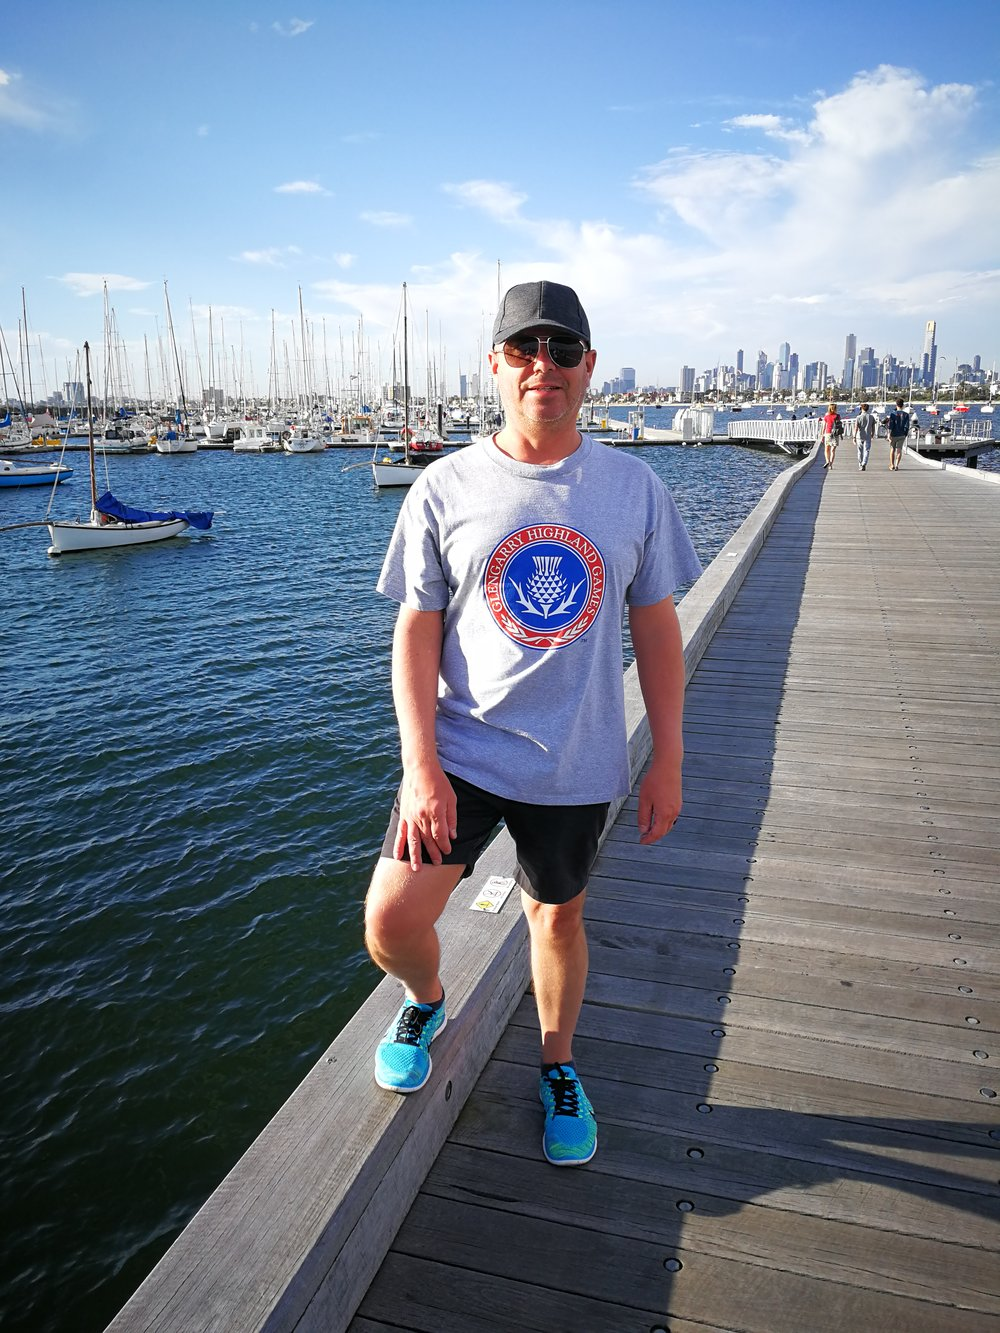 Steve Buchanan while visiting St. Kilda, Melbourne, Australia